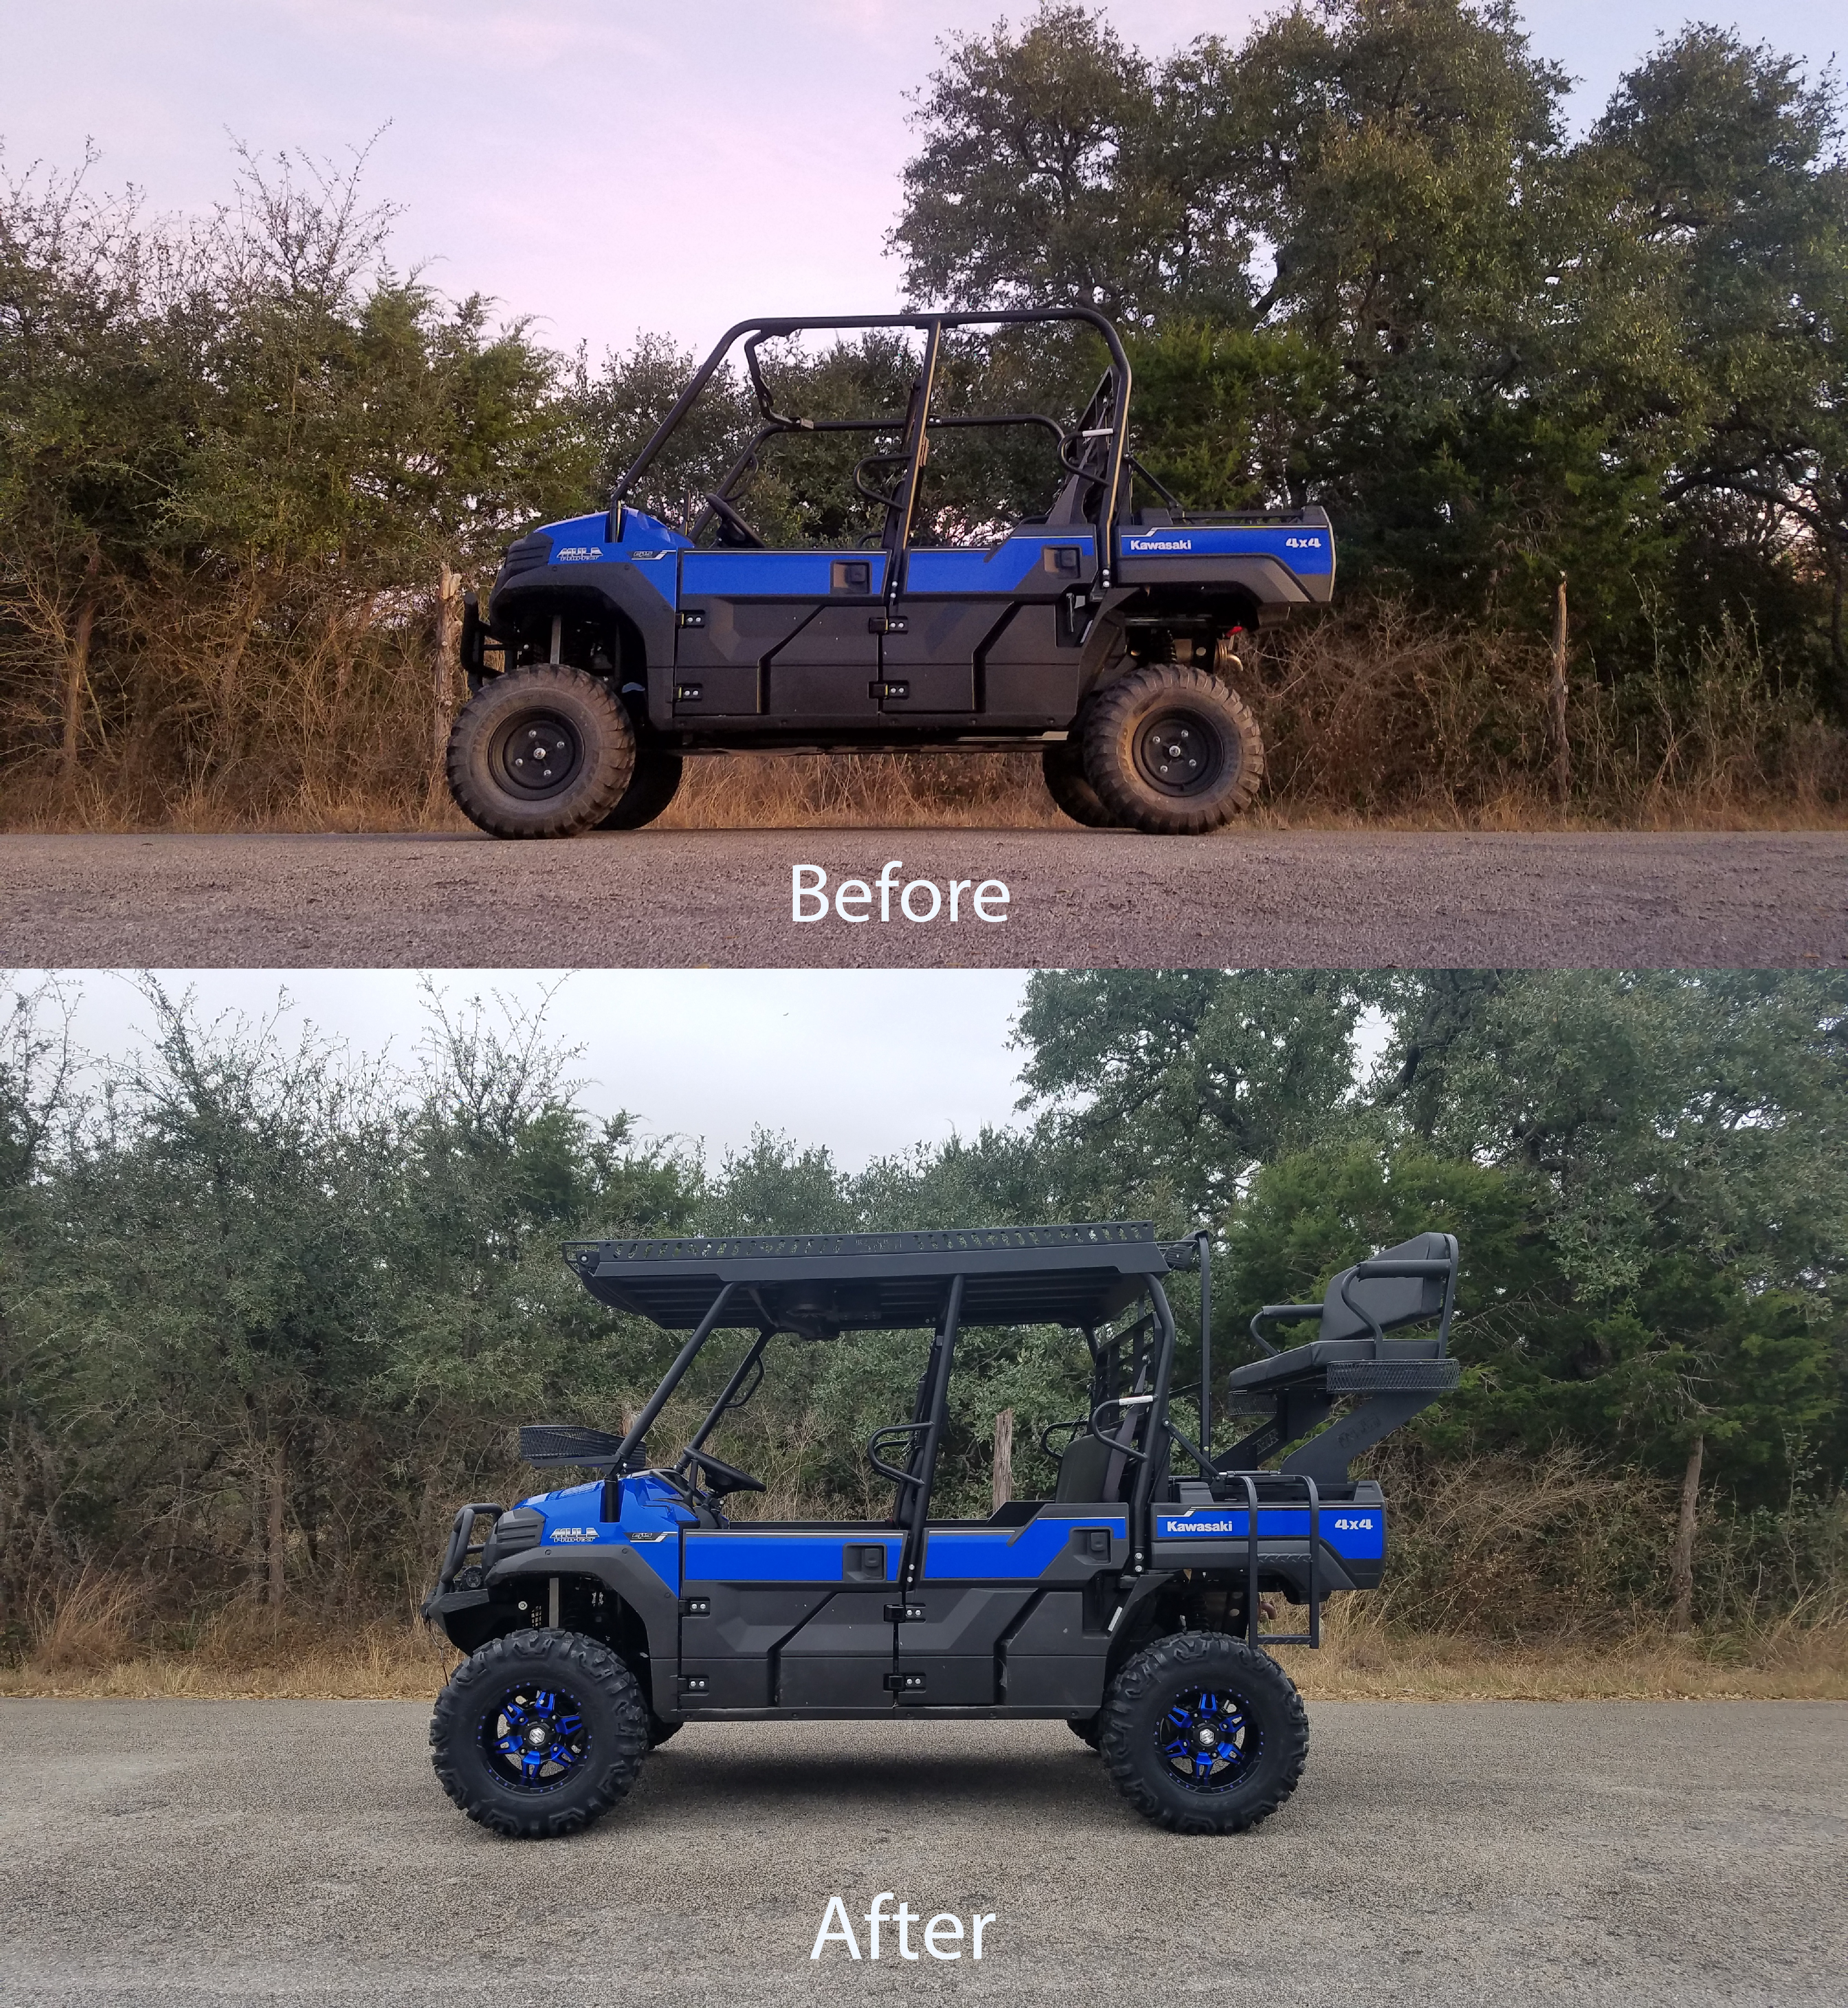 kawasaki-mule-pro-fxt-outfit-with-metal-roof-and-high-seat-lift-kit-bumper-blue-jay.jpg